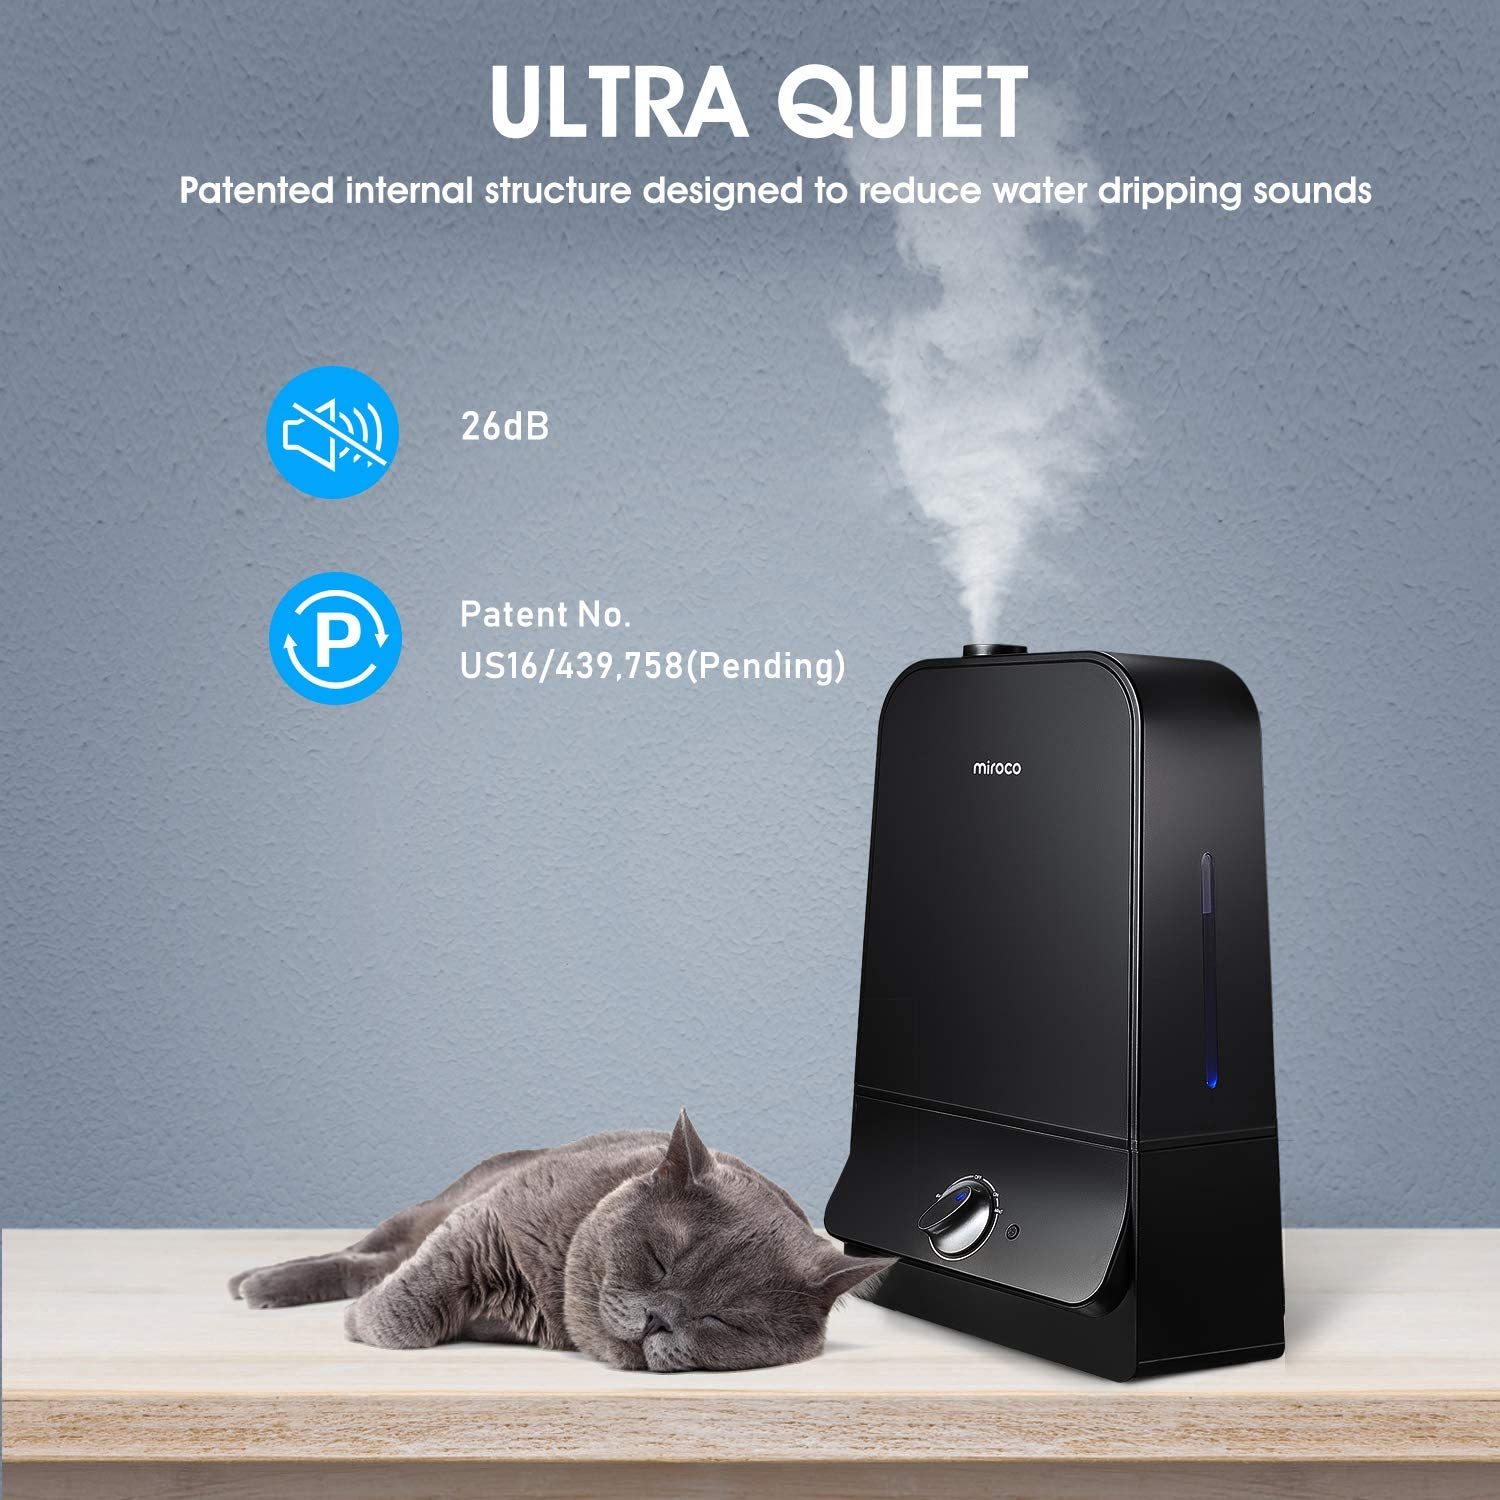 Miroco MI-AH001 Ultrasonic Cool Humidifier with 6L Tank, 26dB Ultra Quiet, 90mm Water Inlet, Night Light, Adjustable Mist, Automatic Shut-Off for Home Office 20-60 Hours, Black